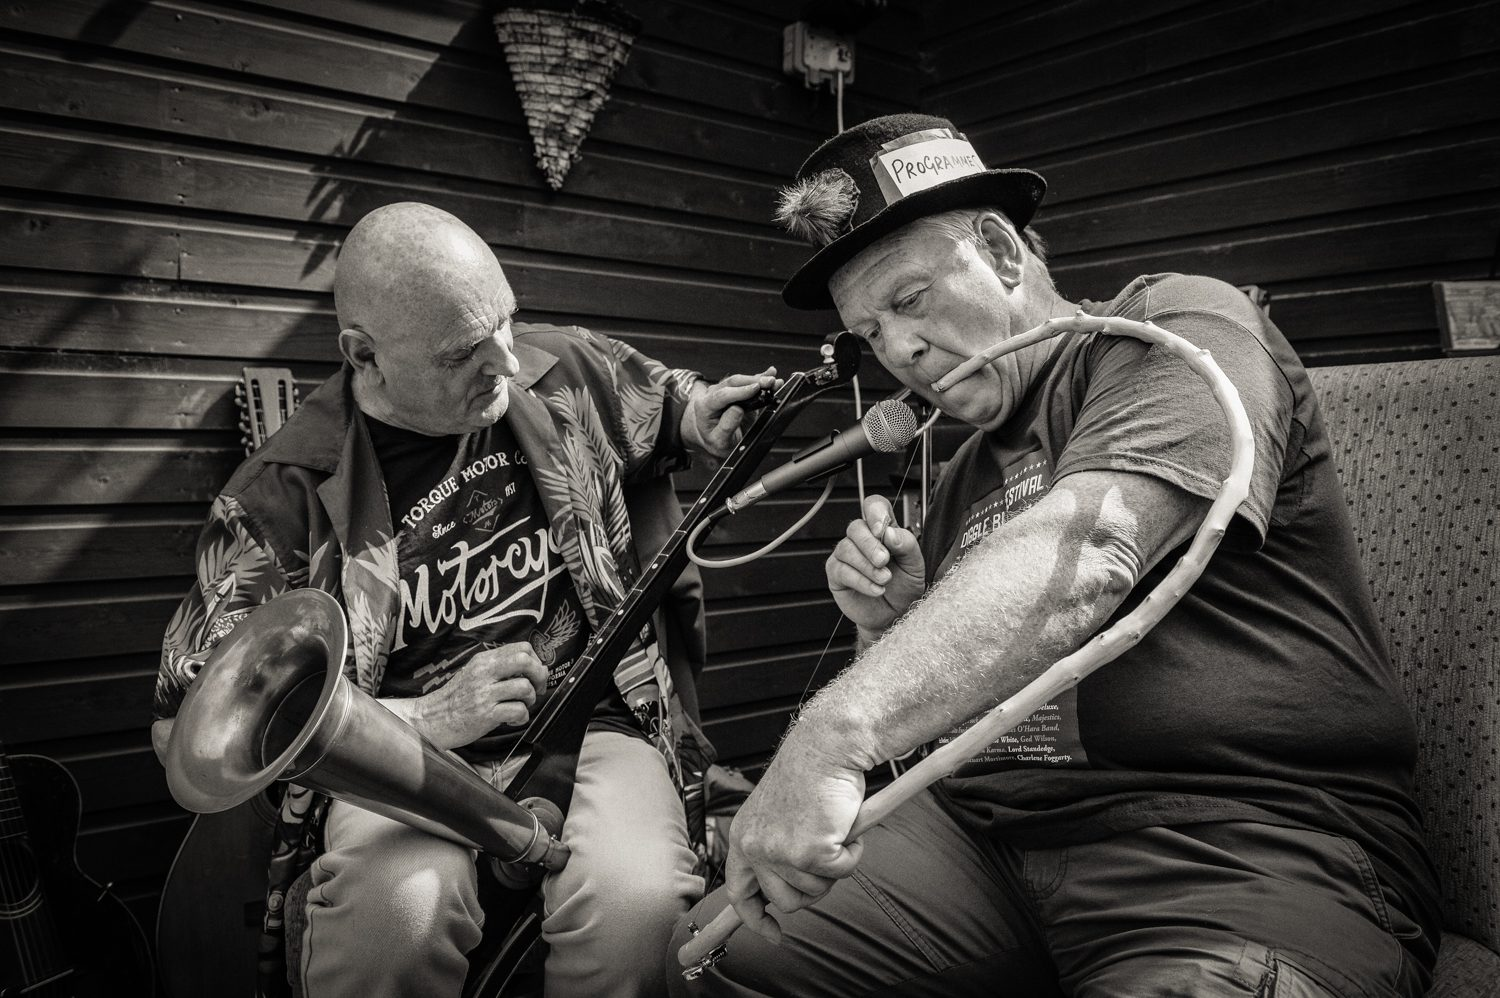 diggle blues jim documentary photography stuart coleman